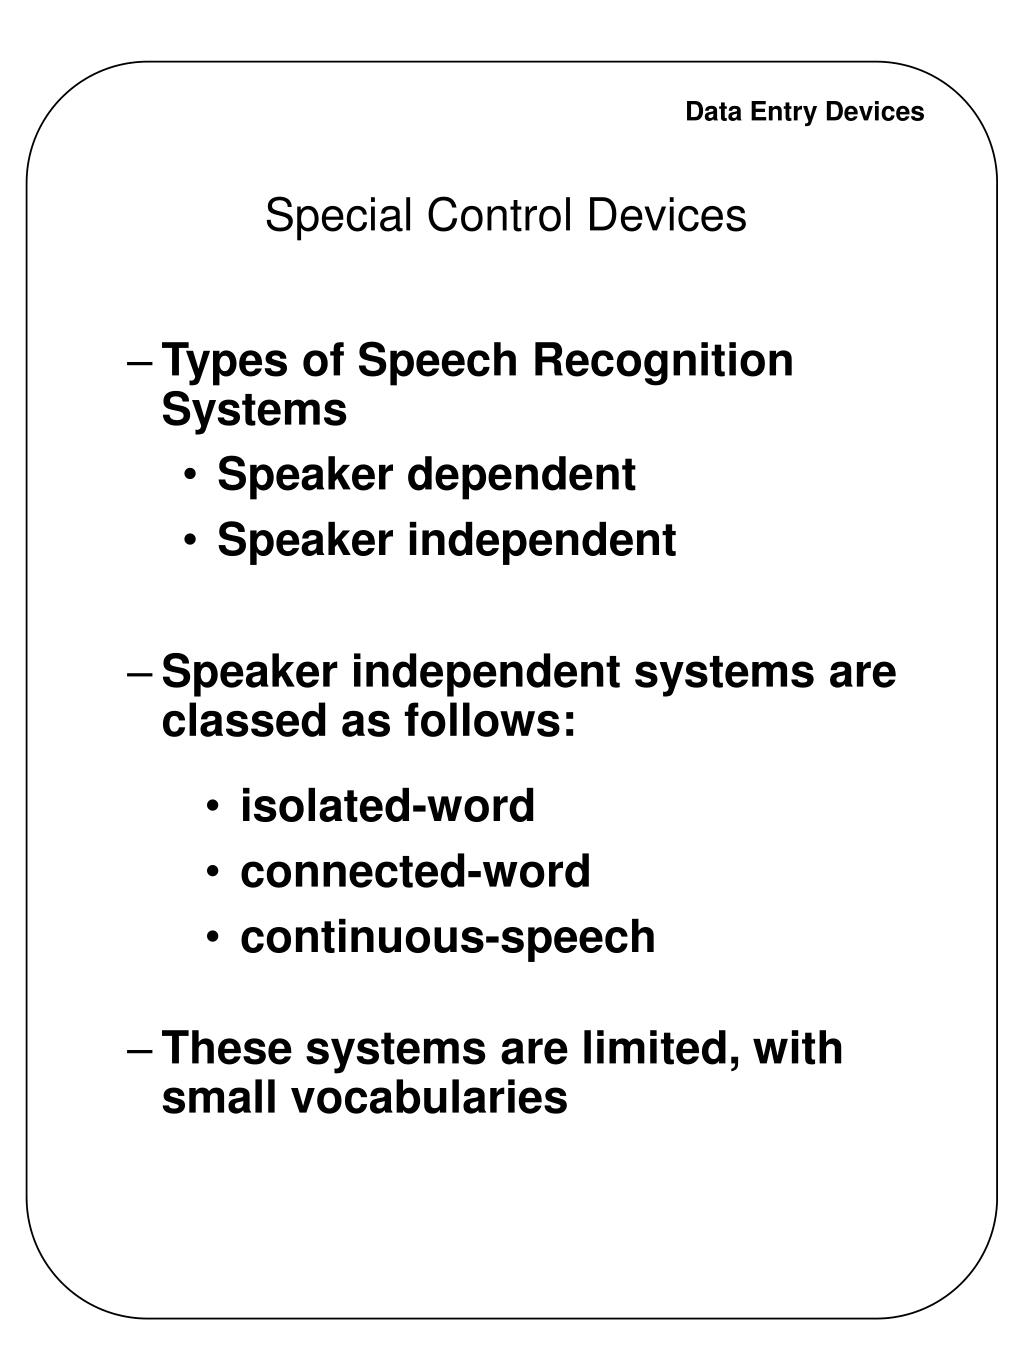 Special Control Devices